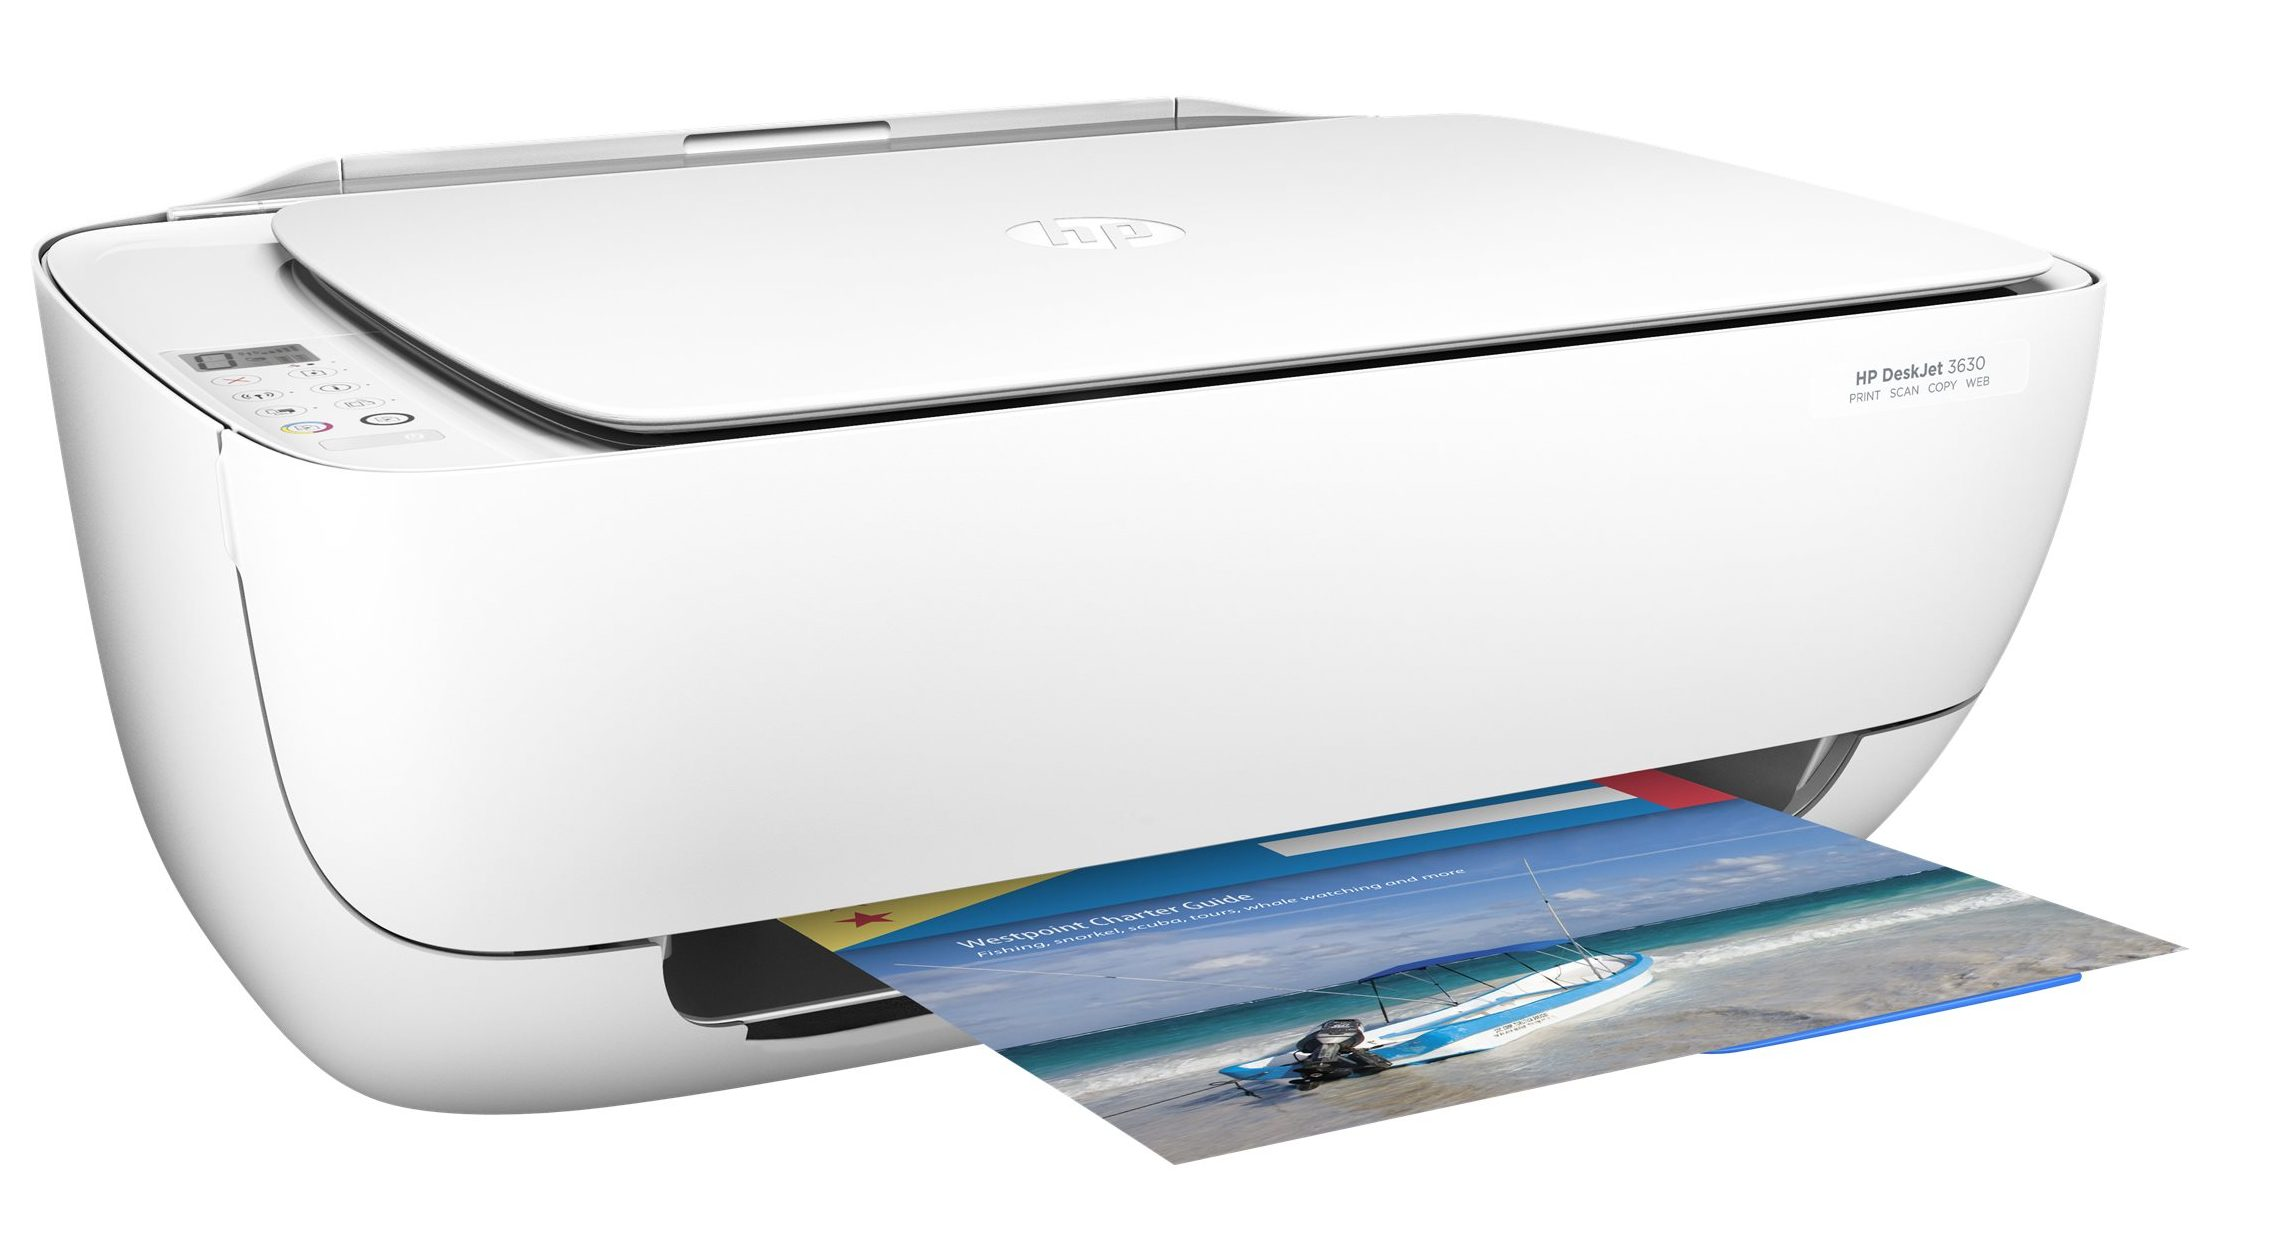 Review HP Deskjet 3630